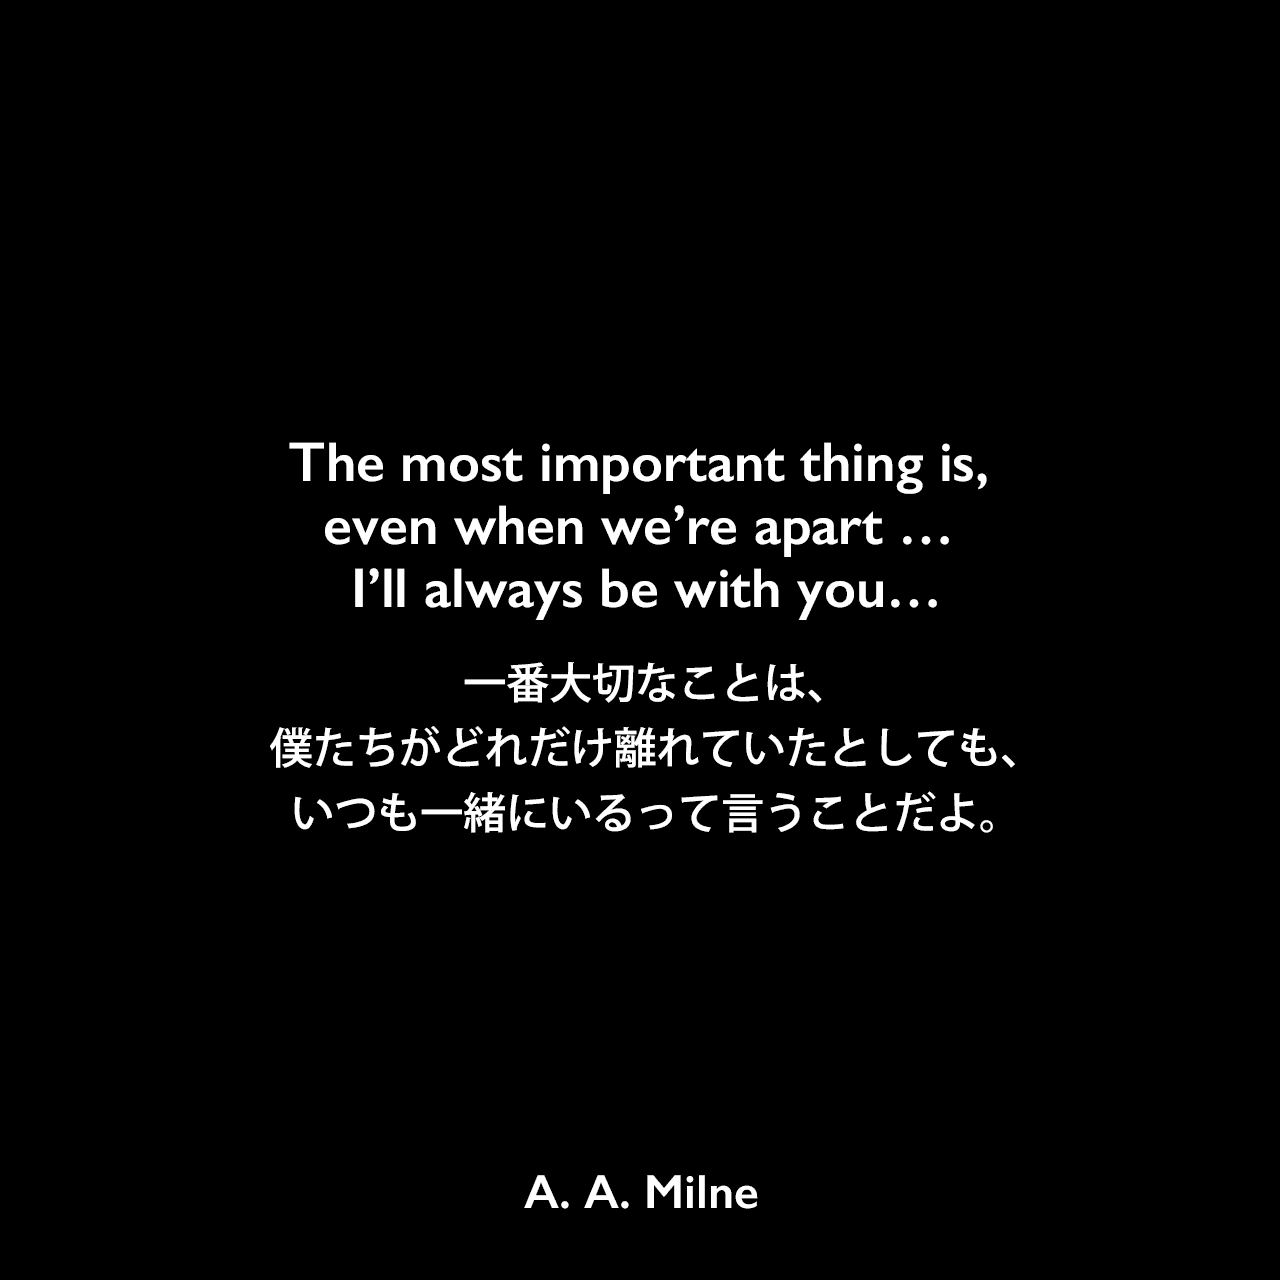 The most important thing is, even when we're apart … I'll always be with you…一番大切なことは、僕たちがどれだけ離れていたとしても、いつも一緒にいるって言うことだよ。A. A. Milne